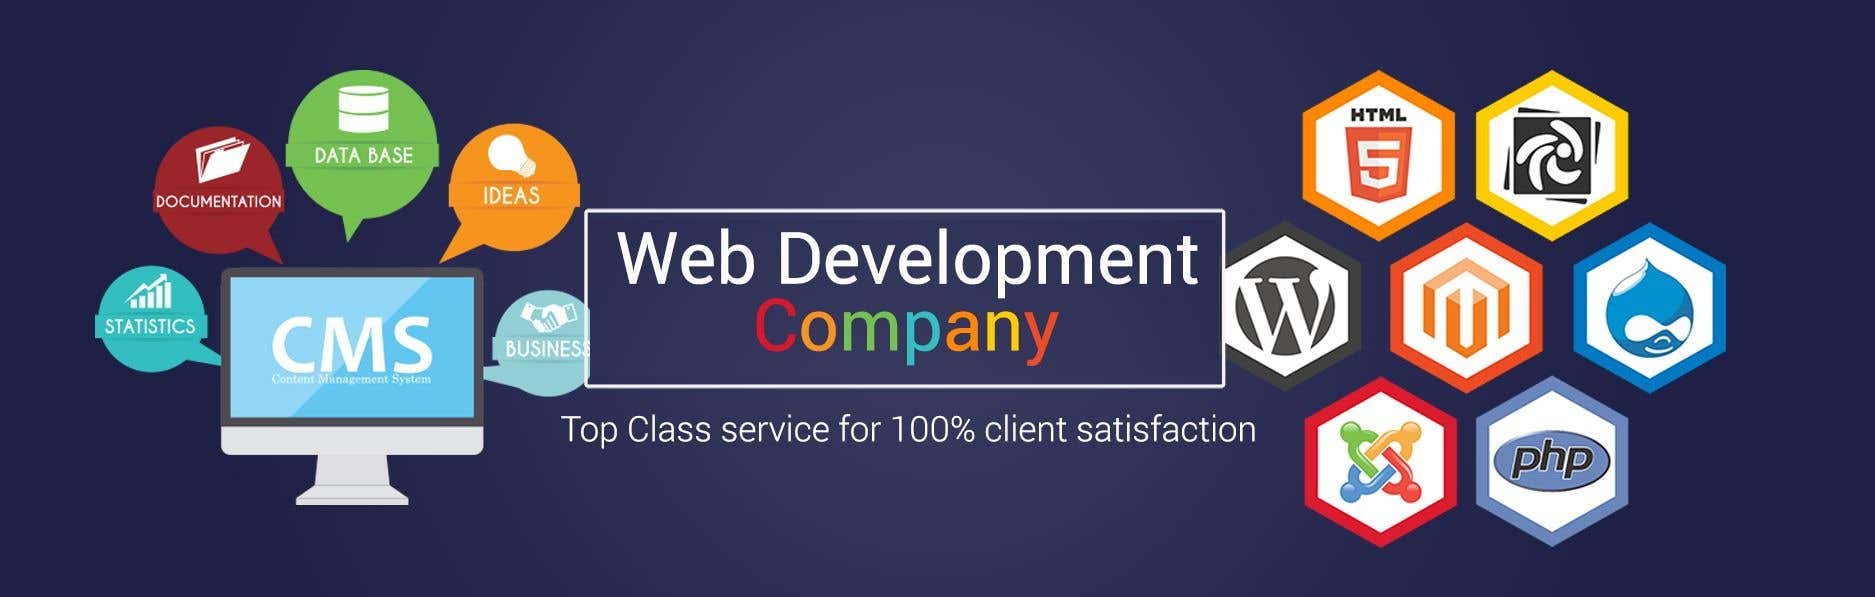 Entry #77 by rana63714 for Banners for Web Development